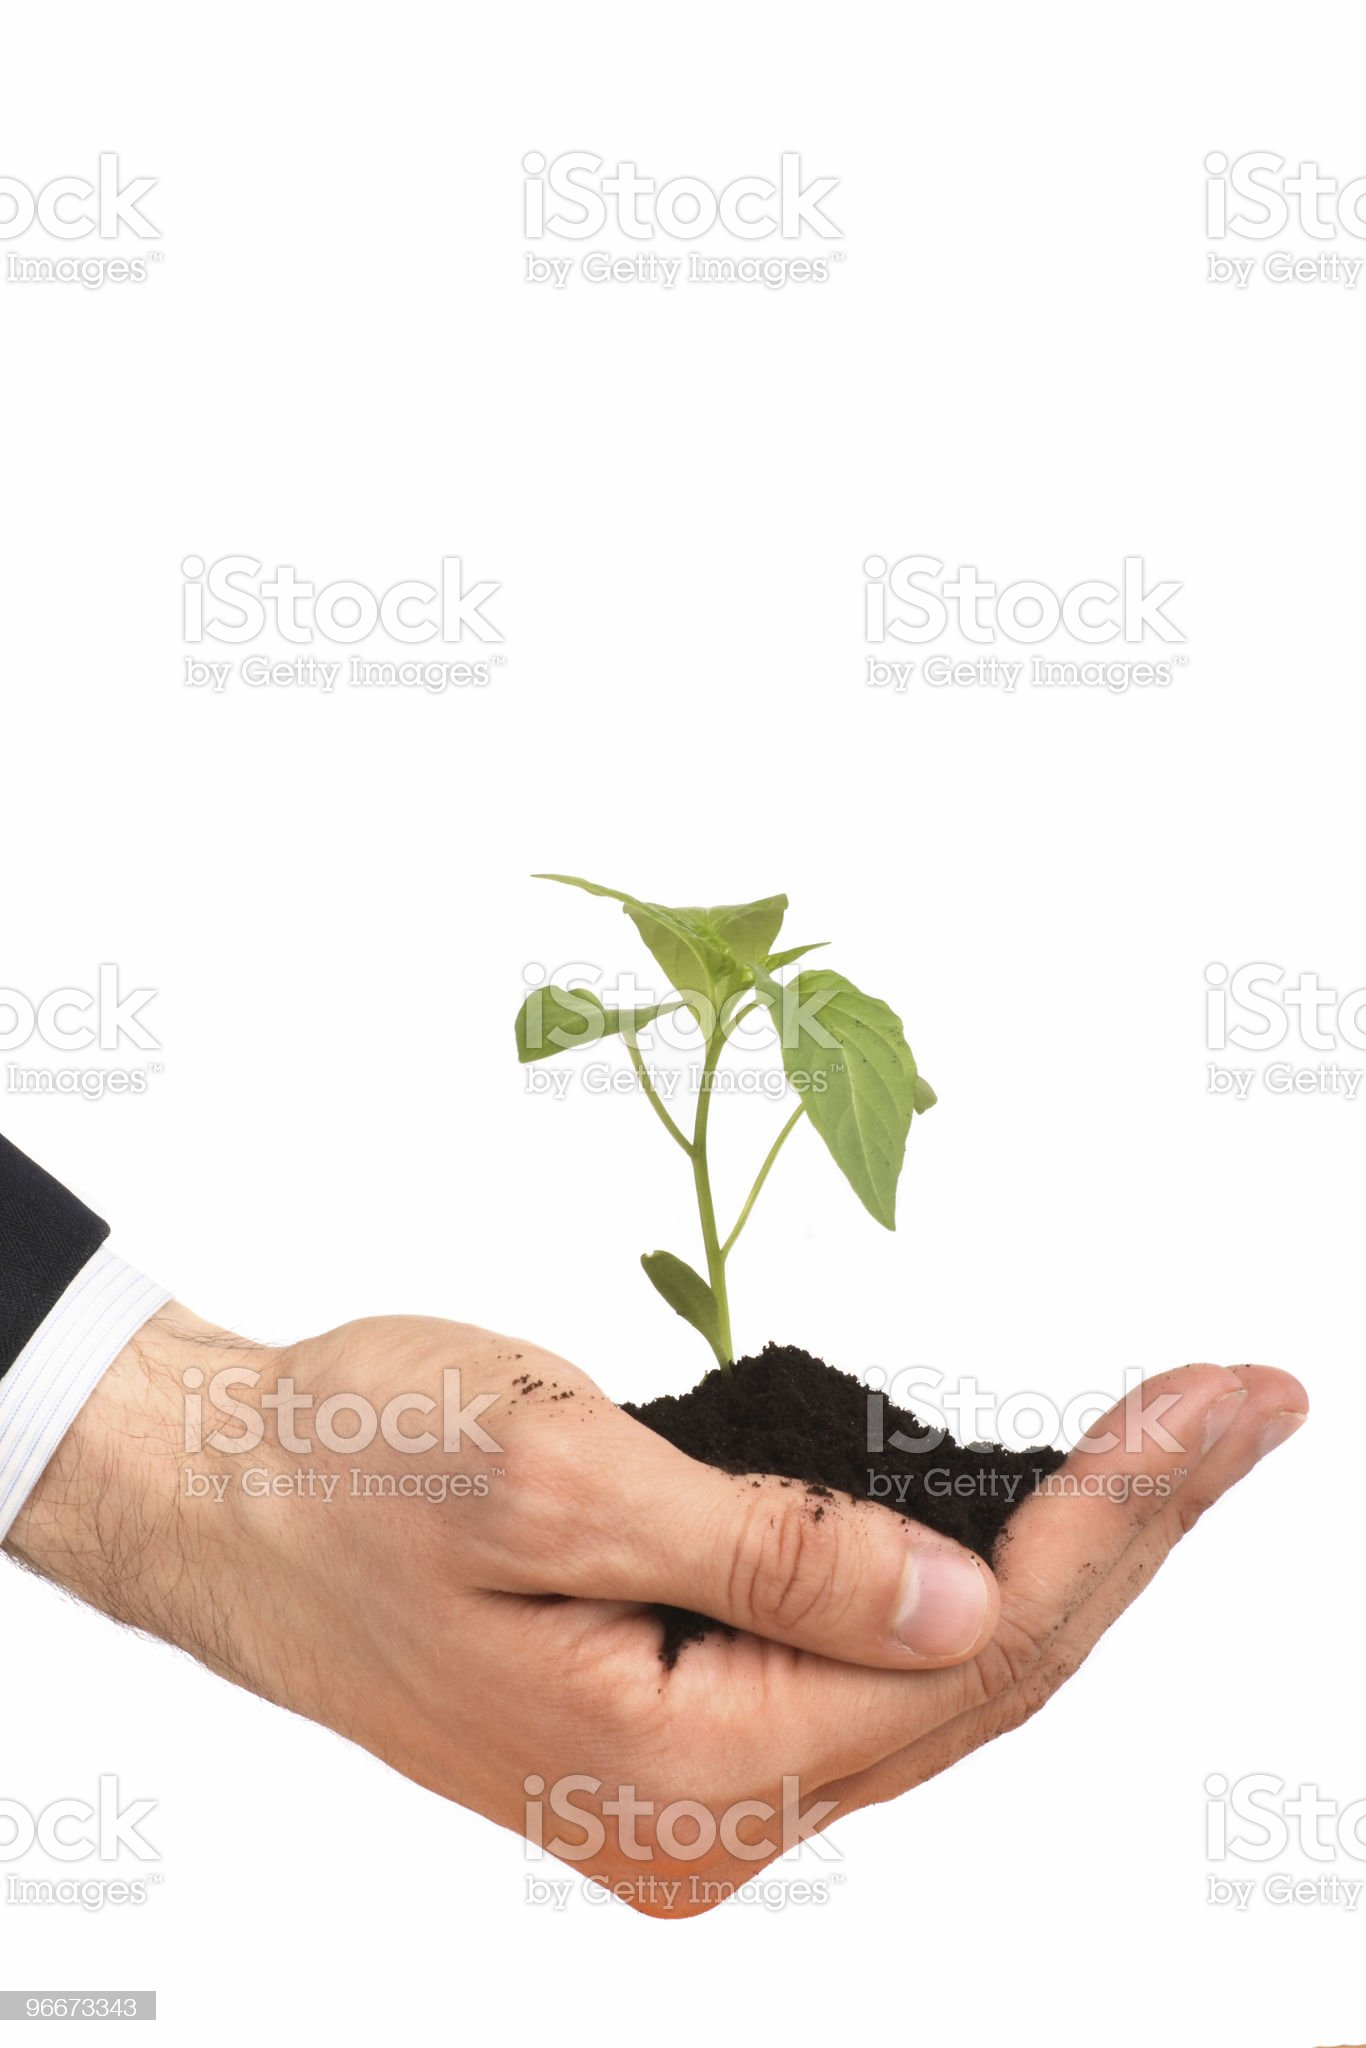 business men a plant royalty-free stock photo